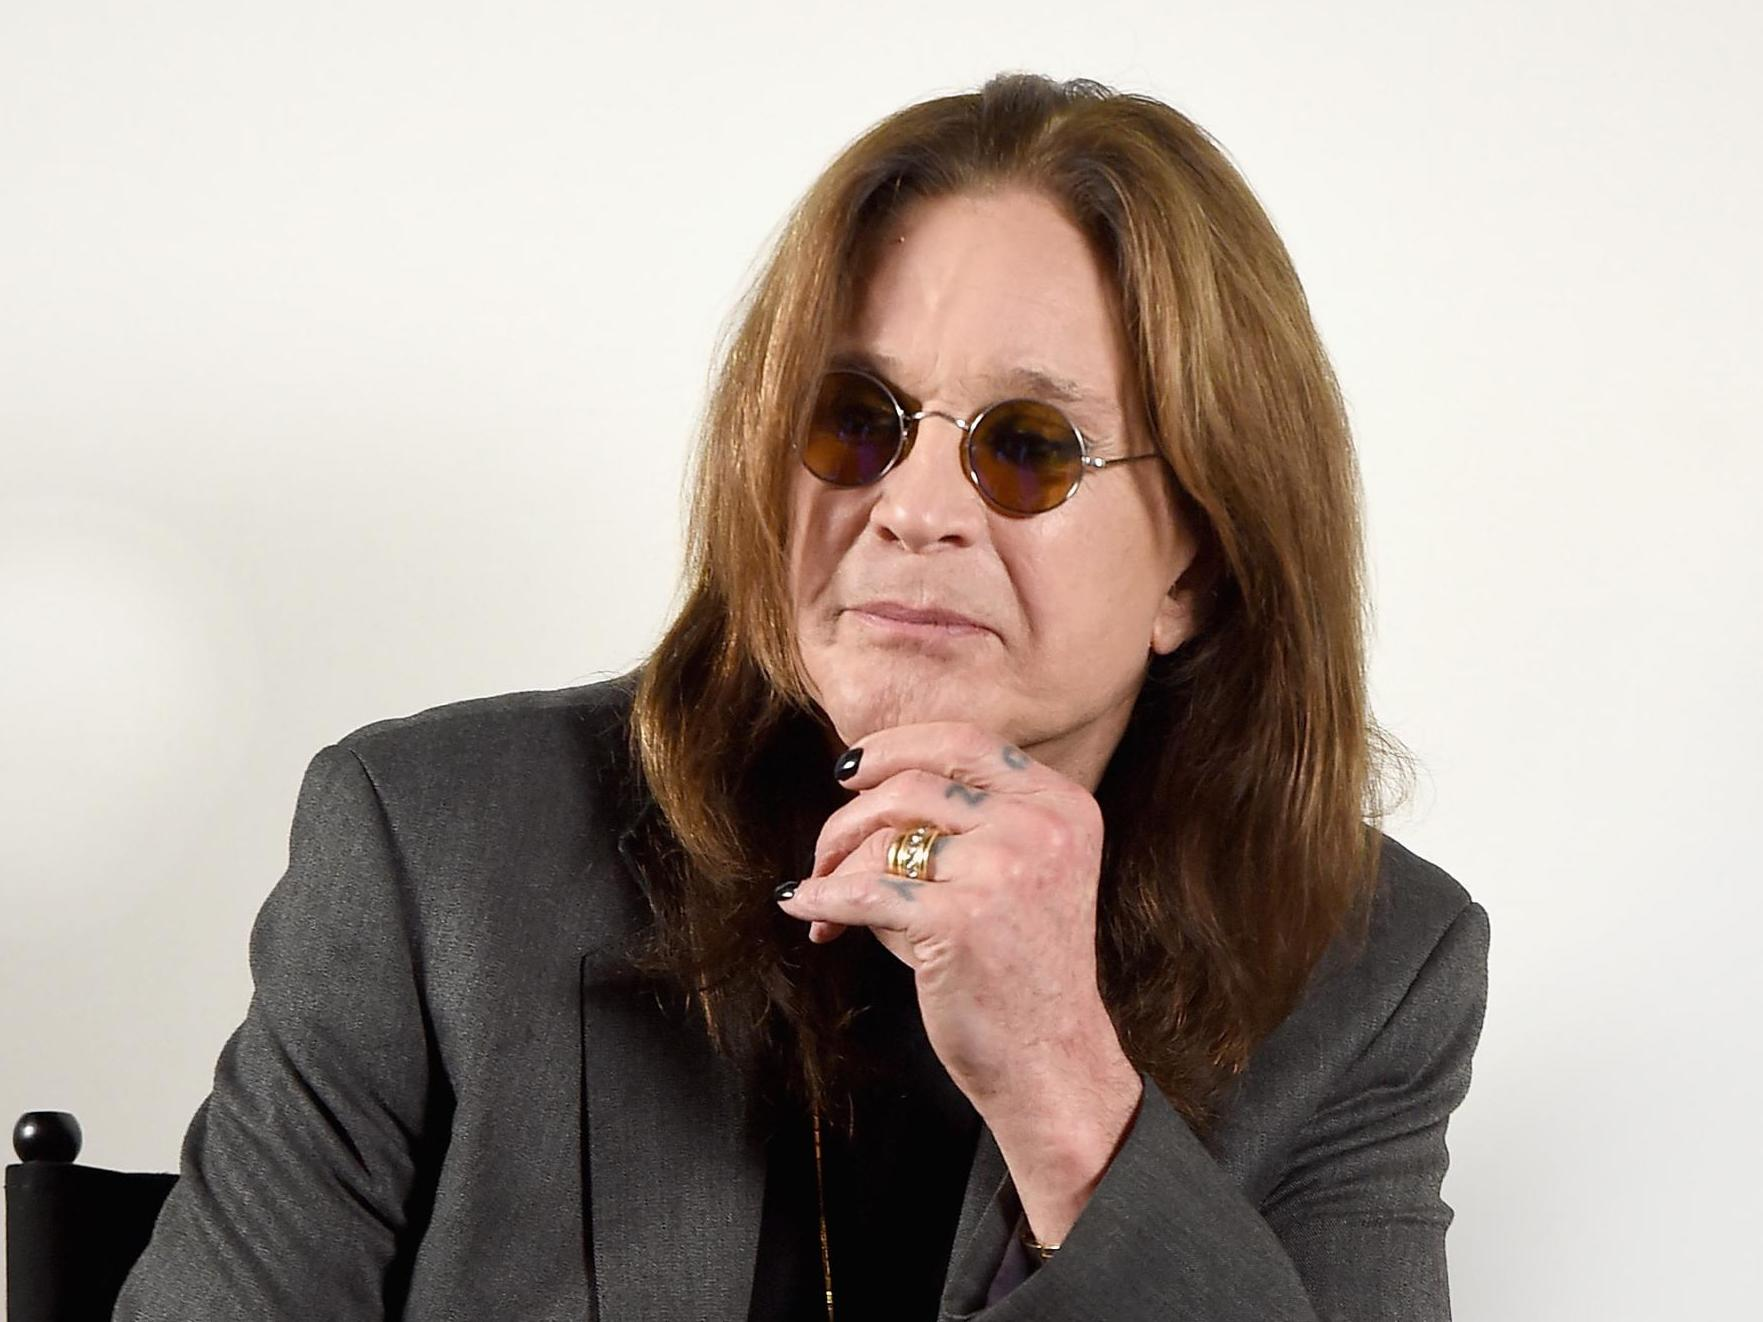 Ozzy Osbourne says Parkinson's battle has been 'f***ing hell'